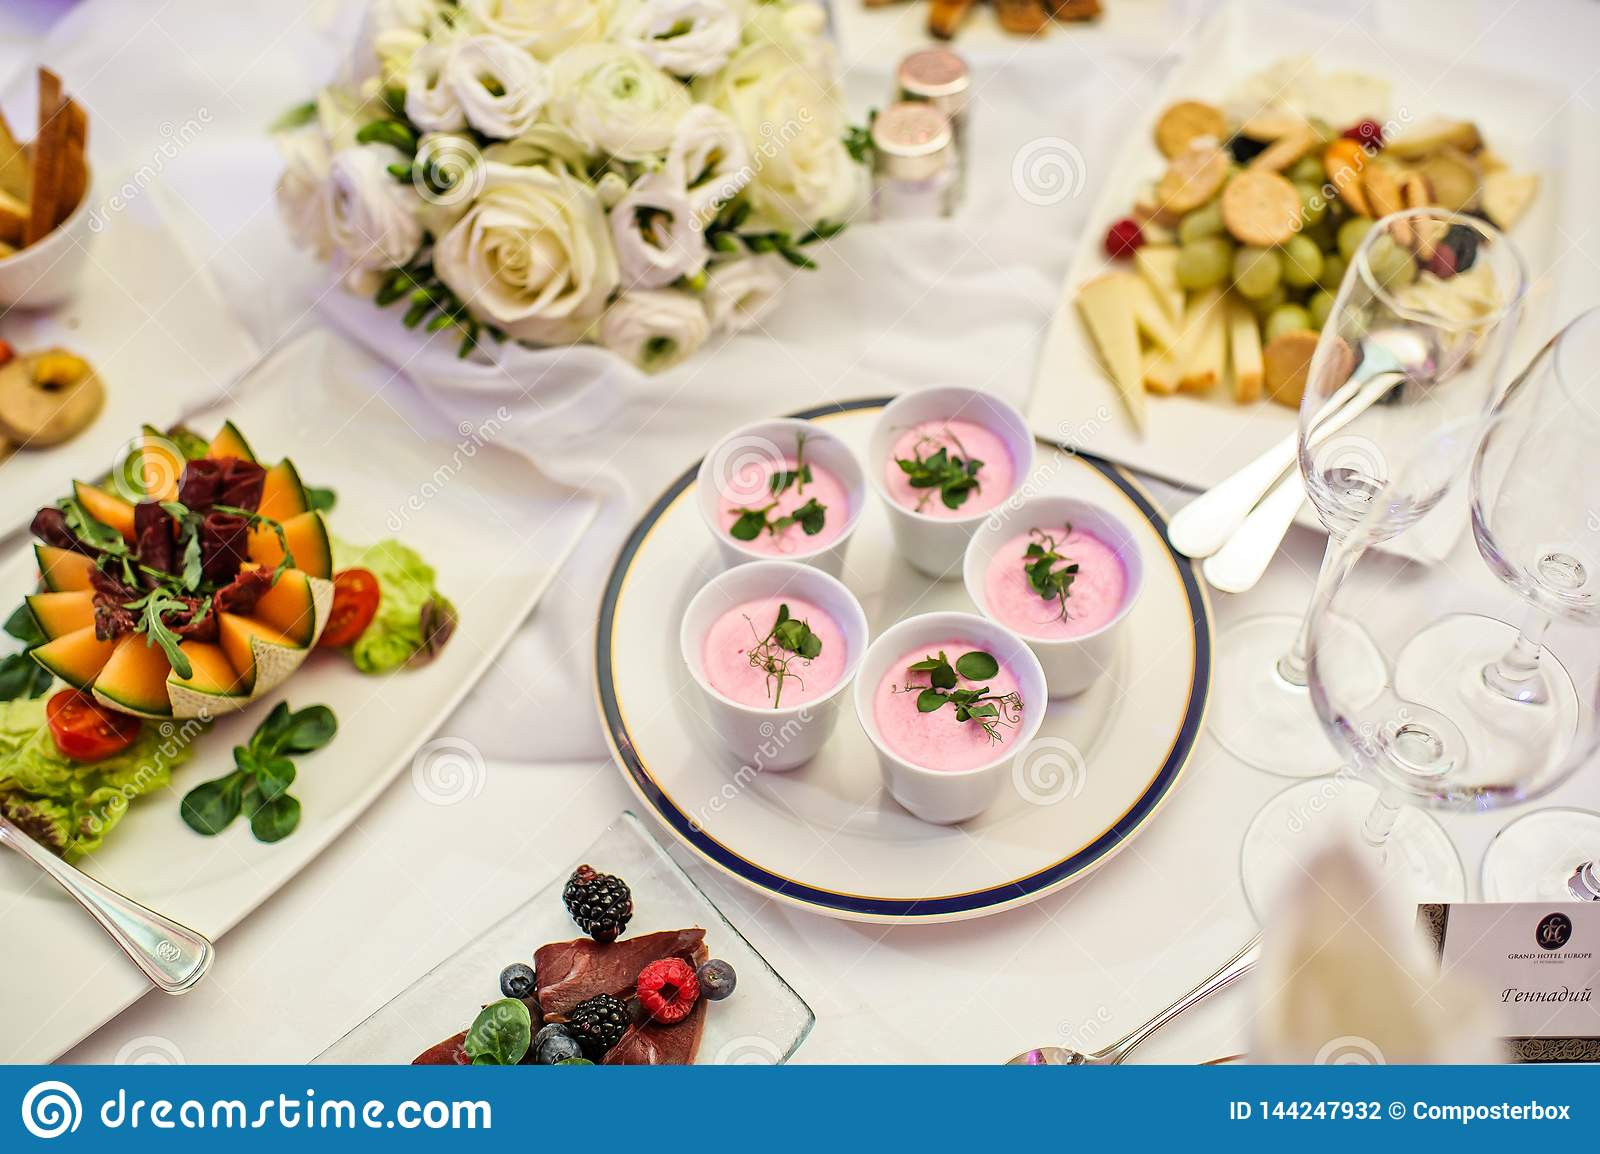 Pink Panna cotta in cups. Banquet table in the restaurant.